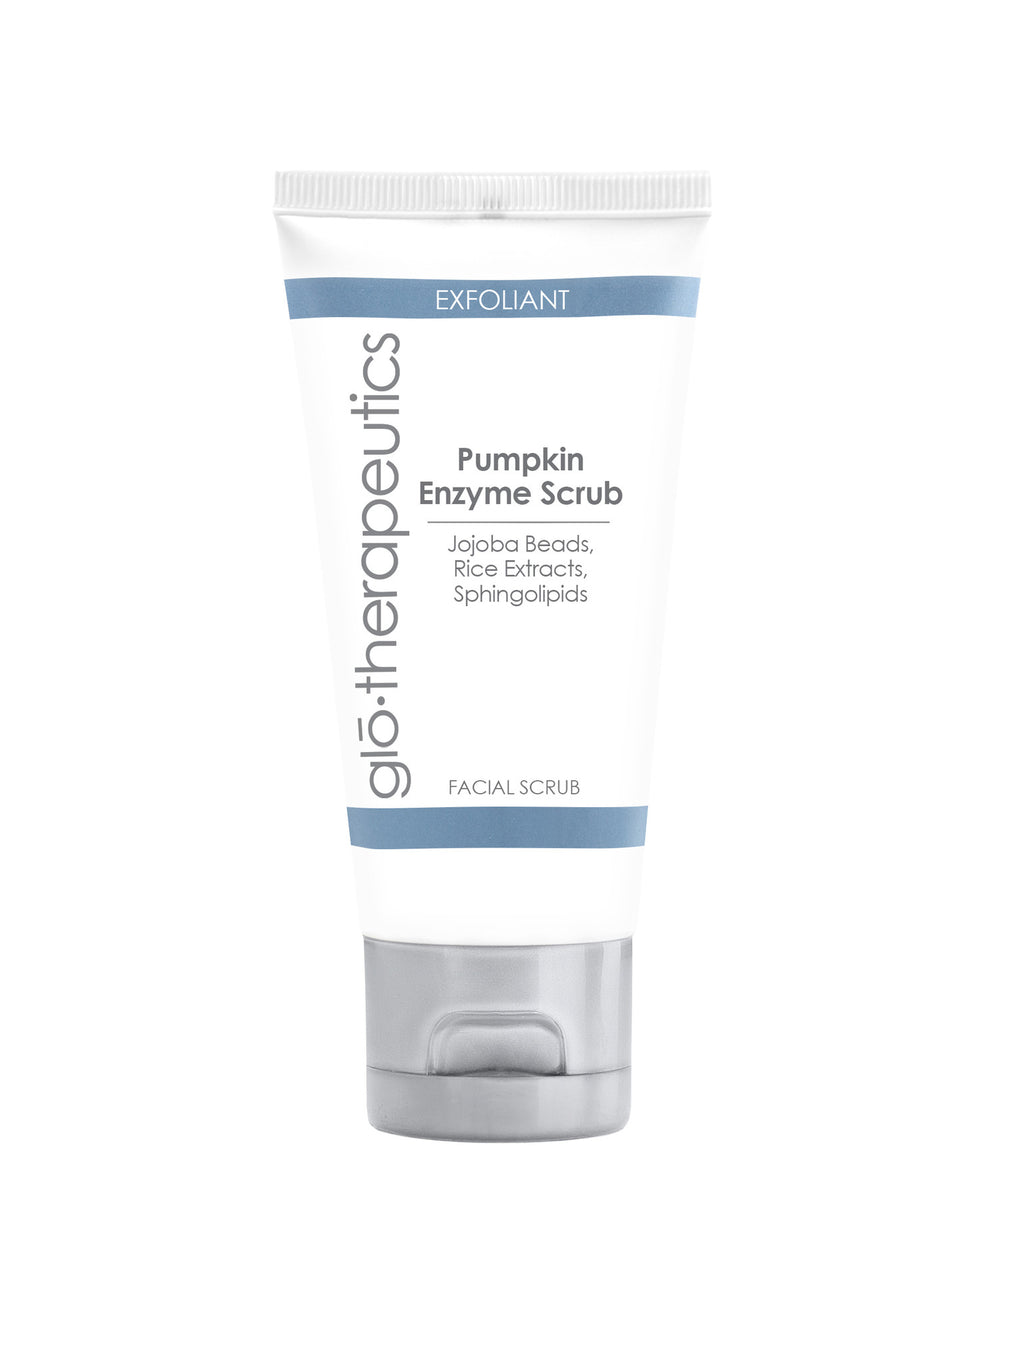 Glo Skin Beauty - Pumpkin Enzyme Scrub